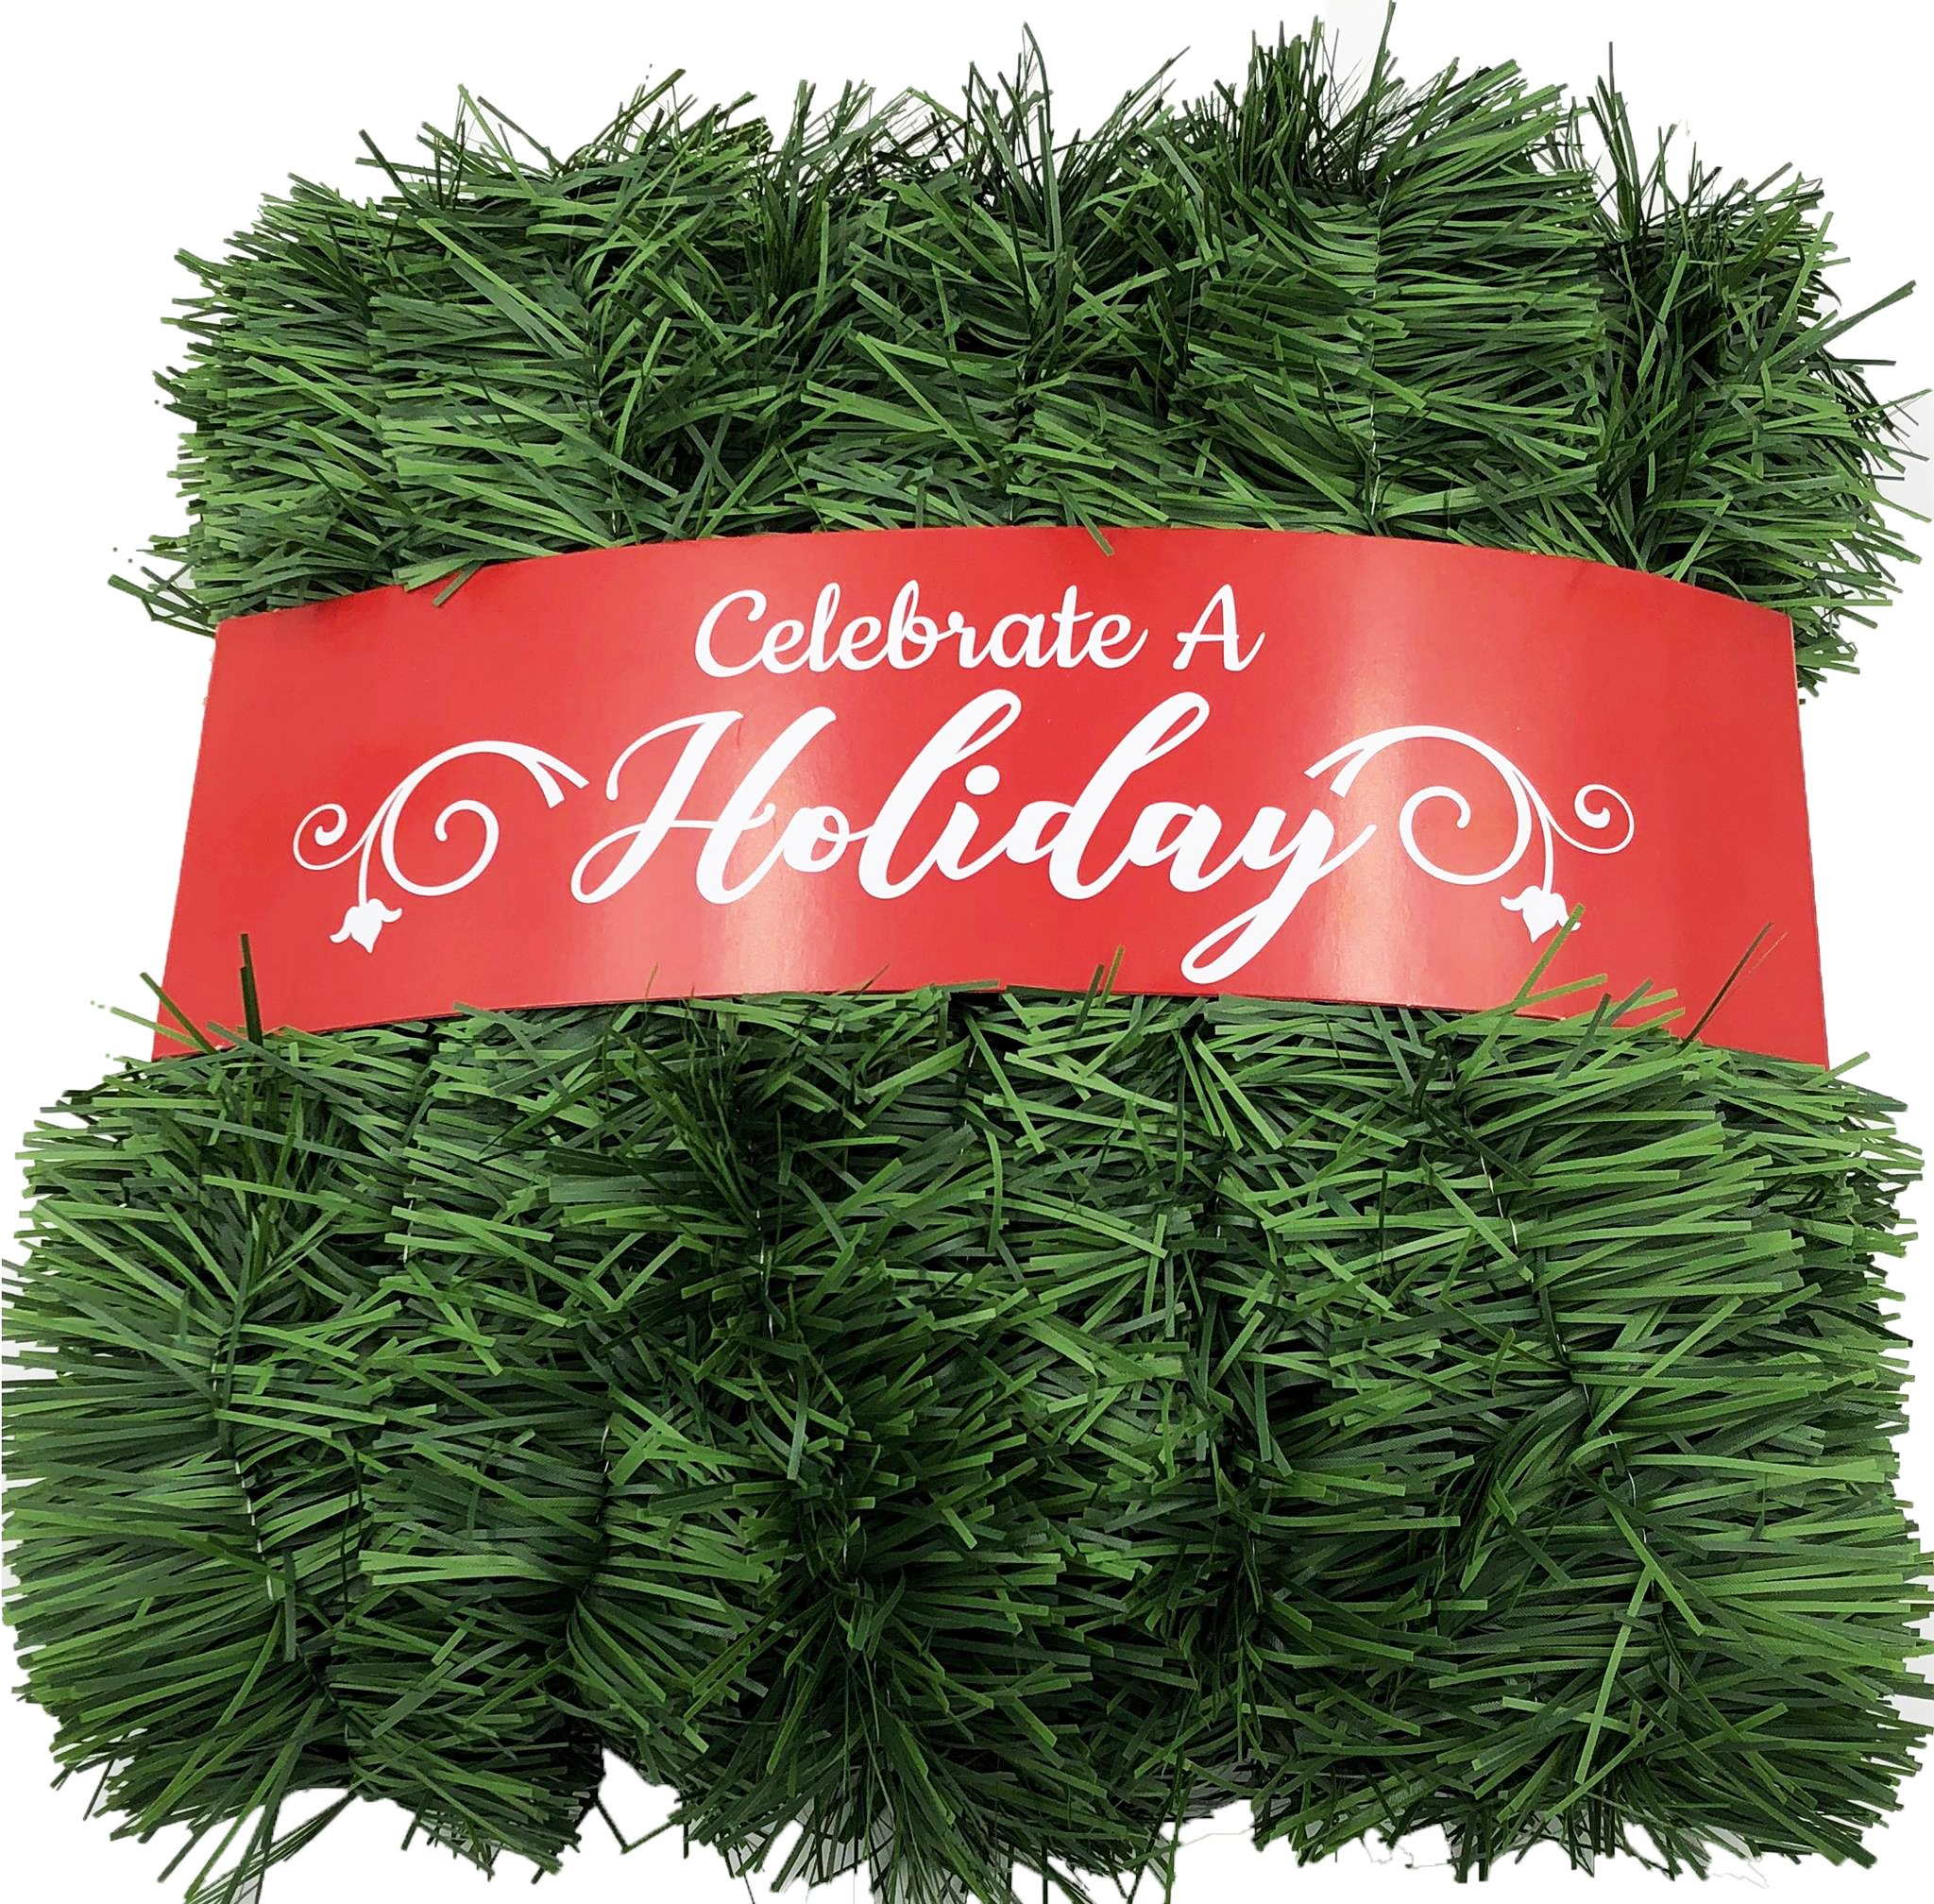 Details About Artificial Greenery 50 Foot Garland For Christmas Decorations Non Lit Soft Green